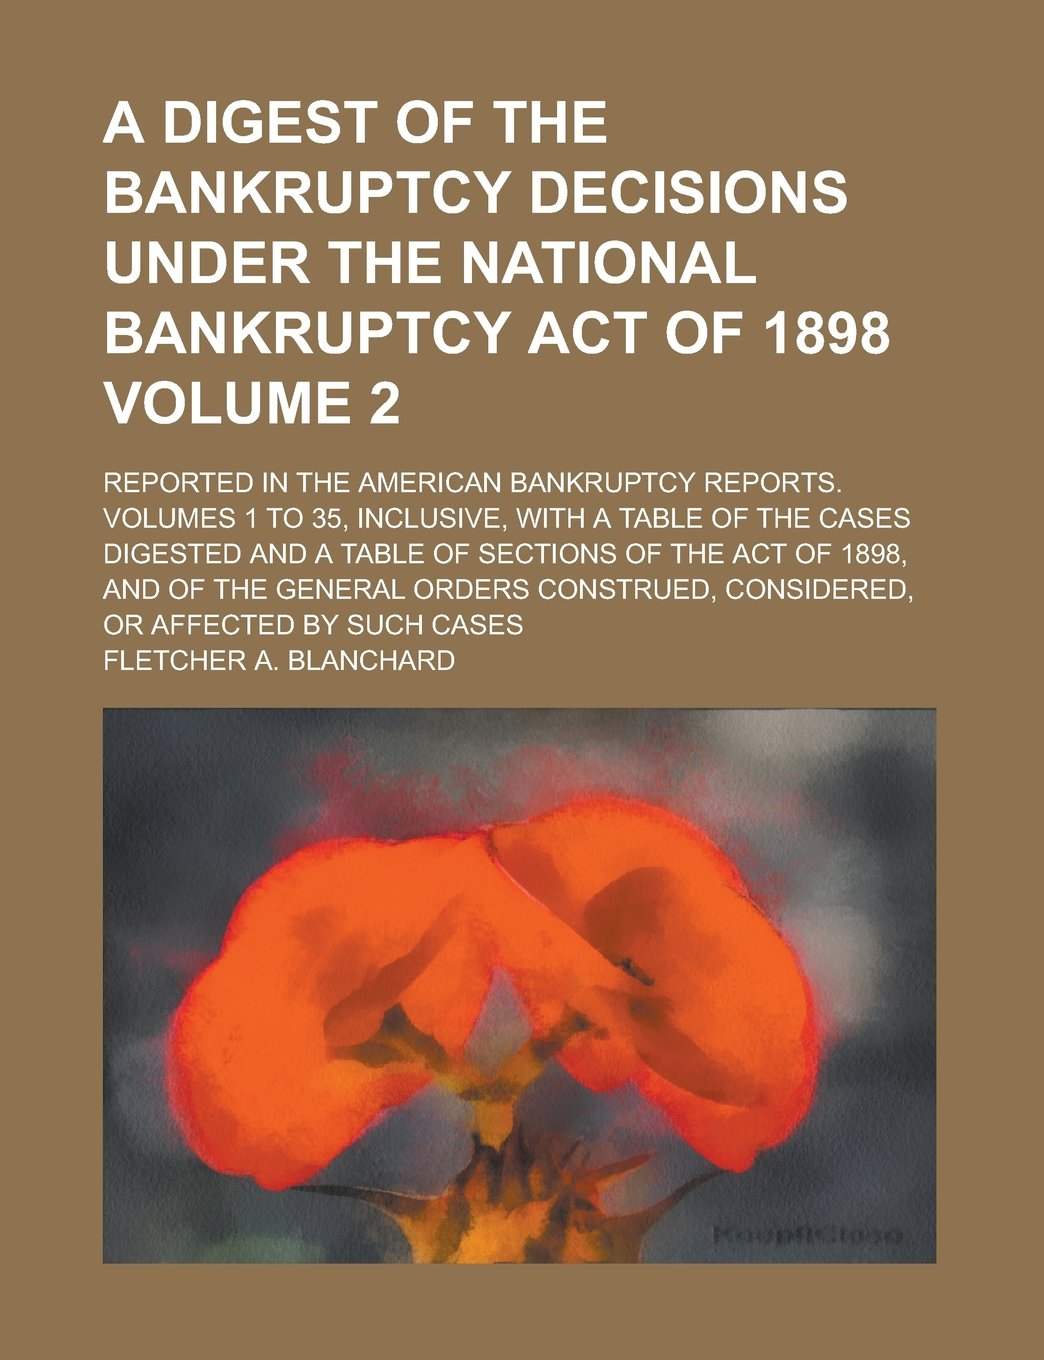 A Digest of the Bankruptcy Decisions Under the National Bankruptcy Act of 1898; Reported in the American Bankruptcy Reports. Volumes 1 to 35, ... a Table of Sections of the Act of Volume 2 ebook